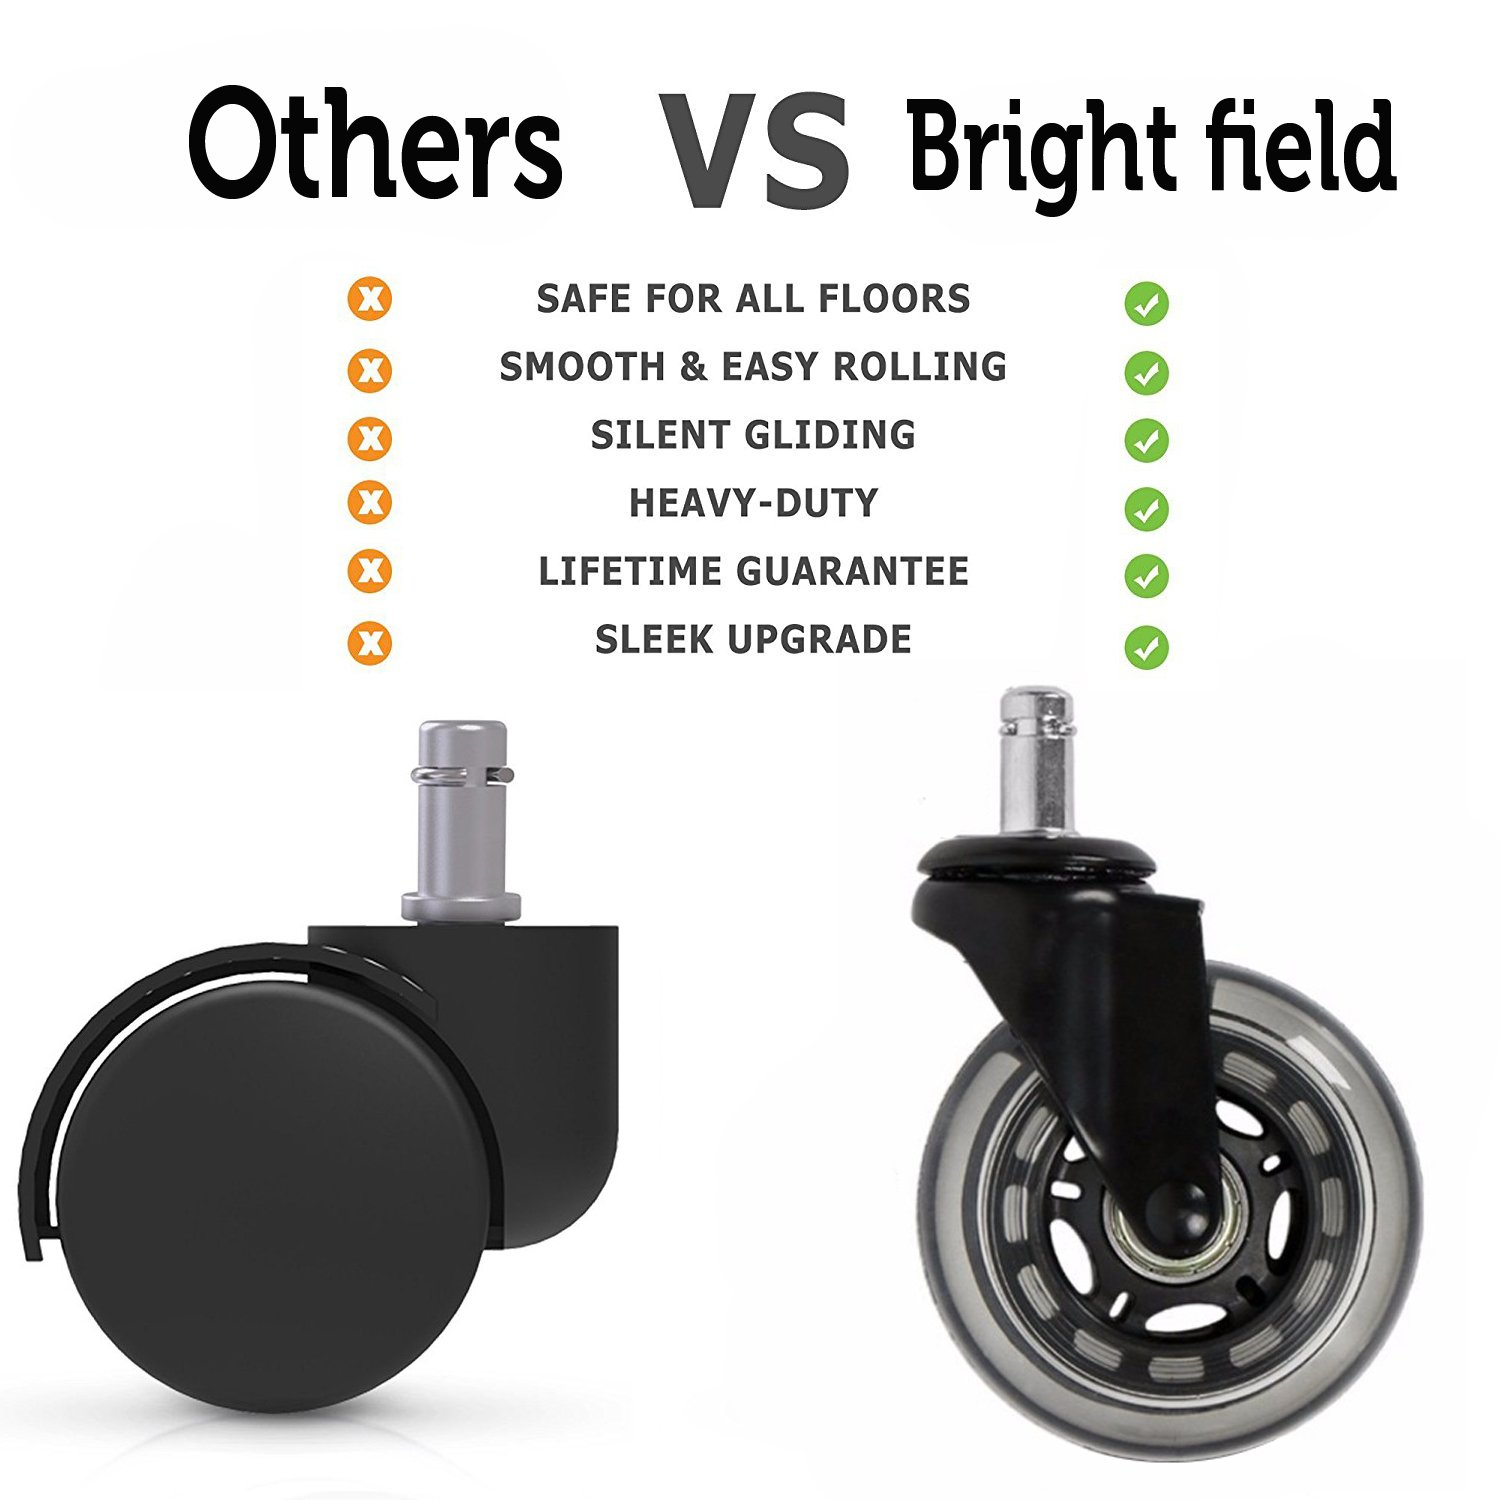 Universal Office Chair Caster Wheels Set of 5 Heavy Duty & Safe for All Floors Including Hardwood 3'' Rollerblade Rubber Replacement for Desk Floor Mats by BF BRIGHTFIELD (Image #2)